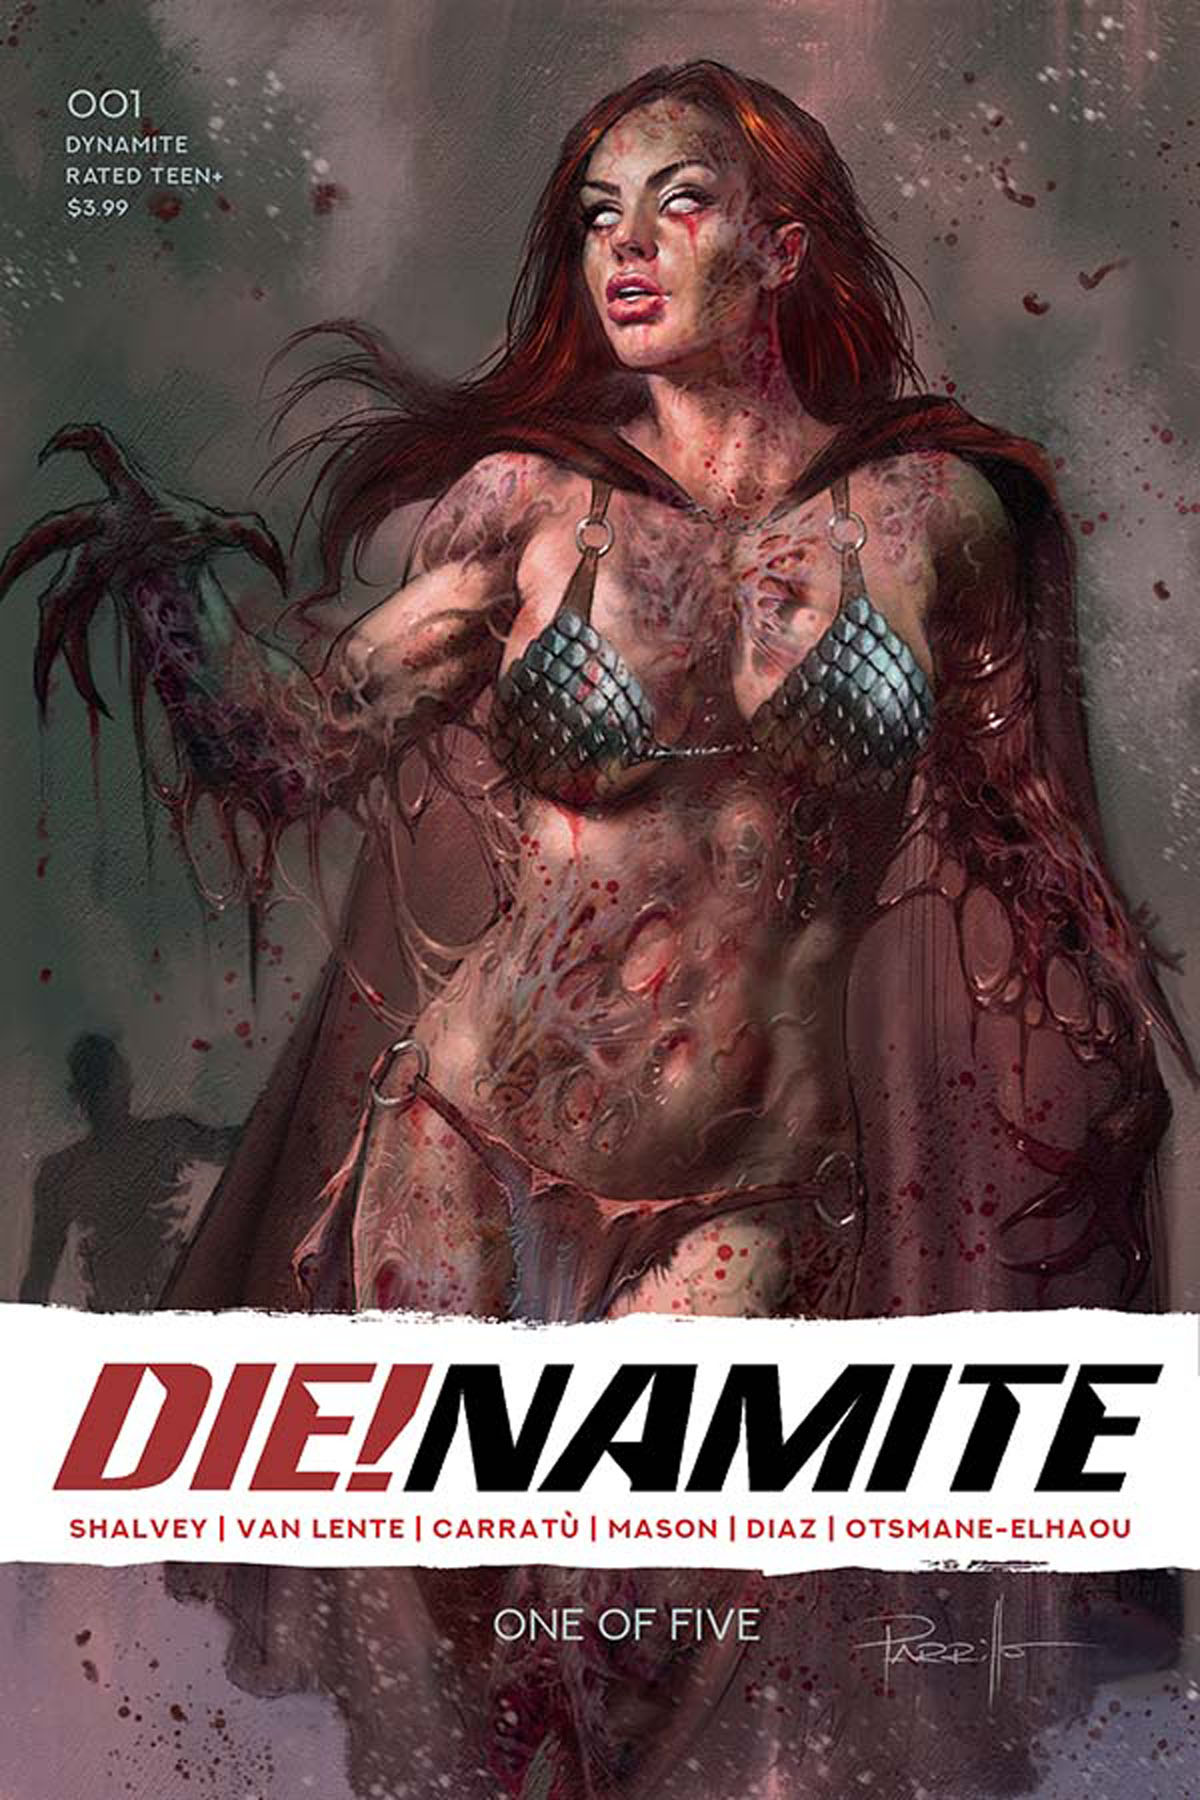 DIE!namite #1 cover A by Parrillo